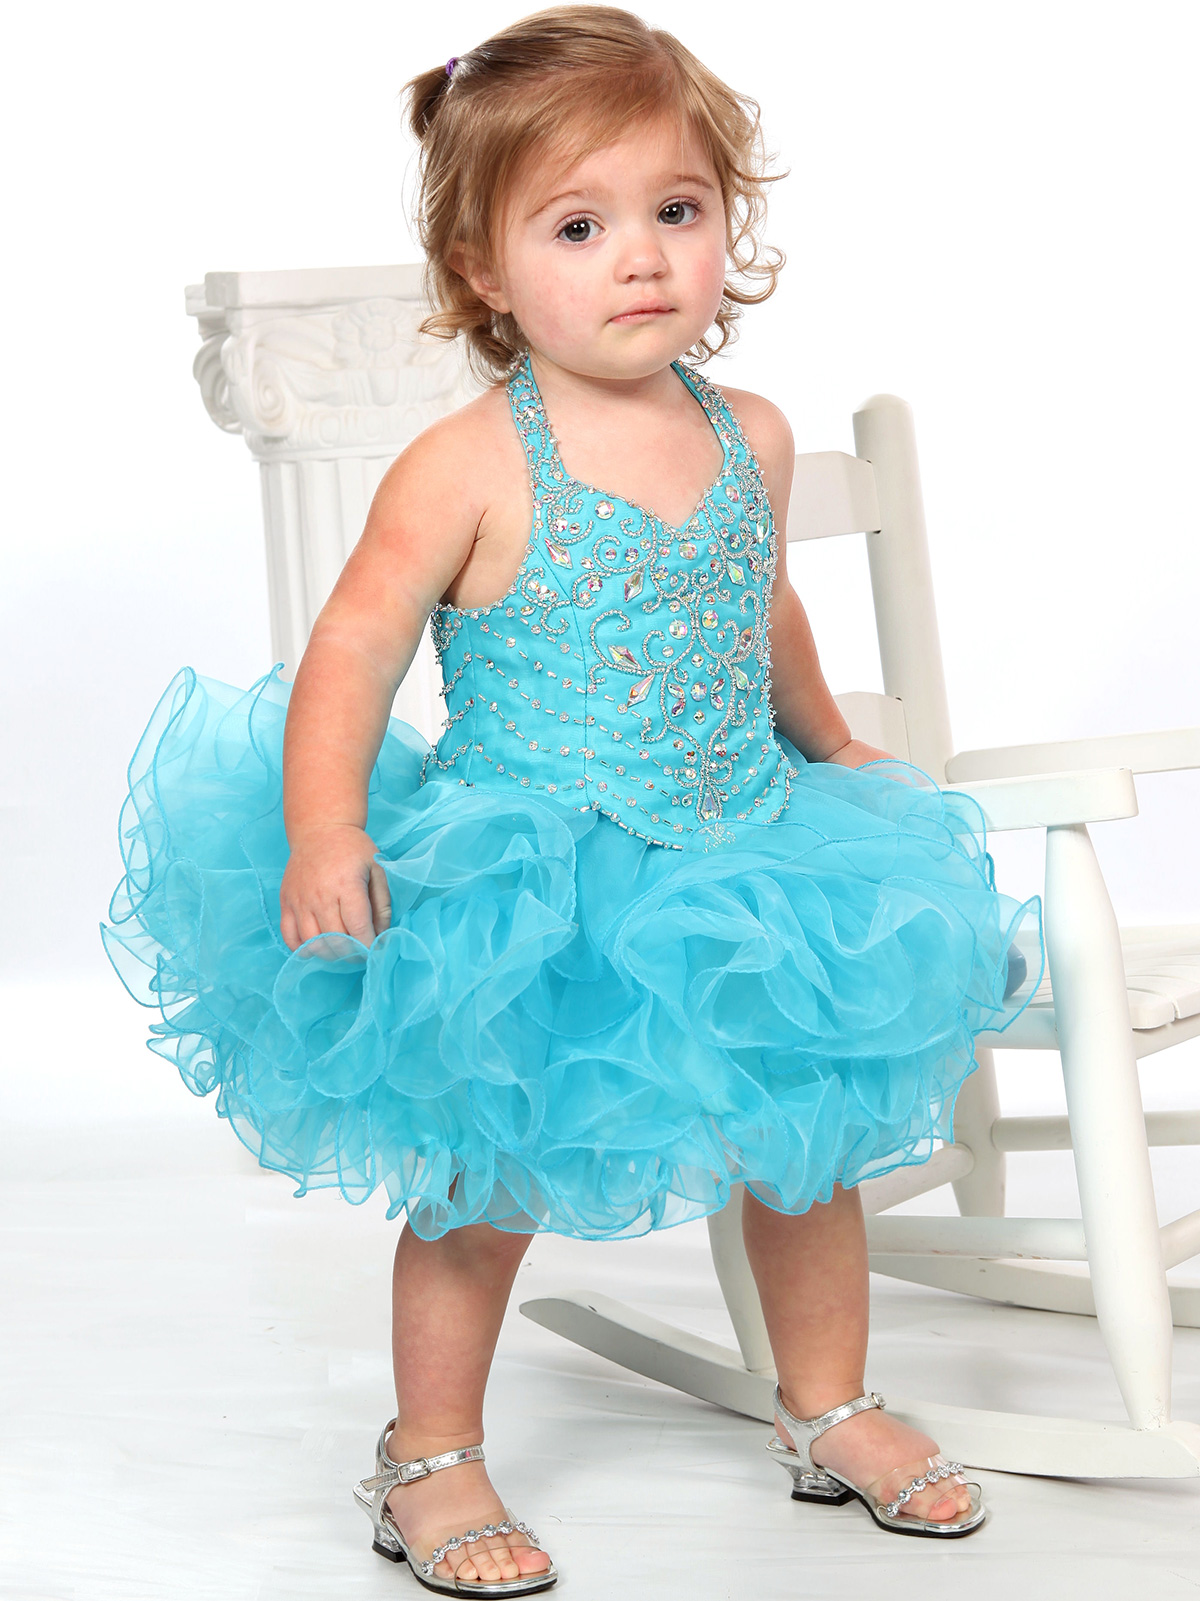 Shop cute, affordable toddler girls' clothing at gehedoruqigimate.ml Buy quality toddler girl dresses & outfits from the trusted name in children's apparel. Shop cute, affordable toddler girls' clothing at gehedoruqigimate.ml Buy quality toddler girl dresses & outfits from the trusted name in children's apparel.